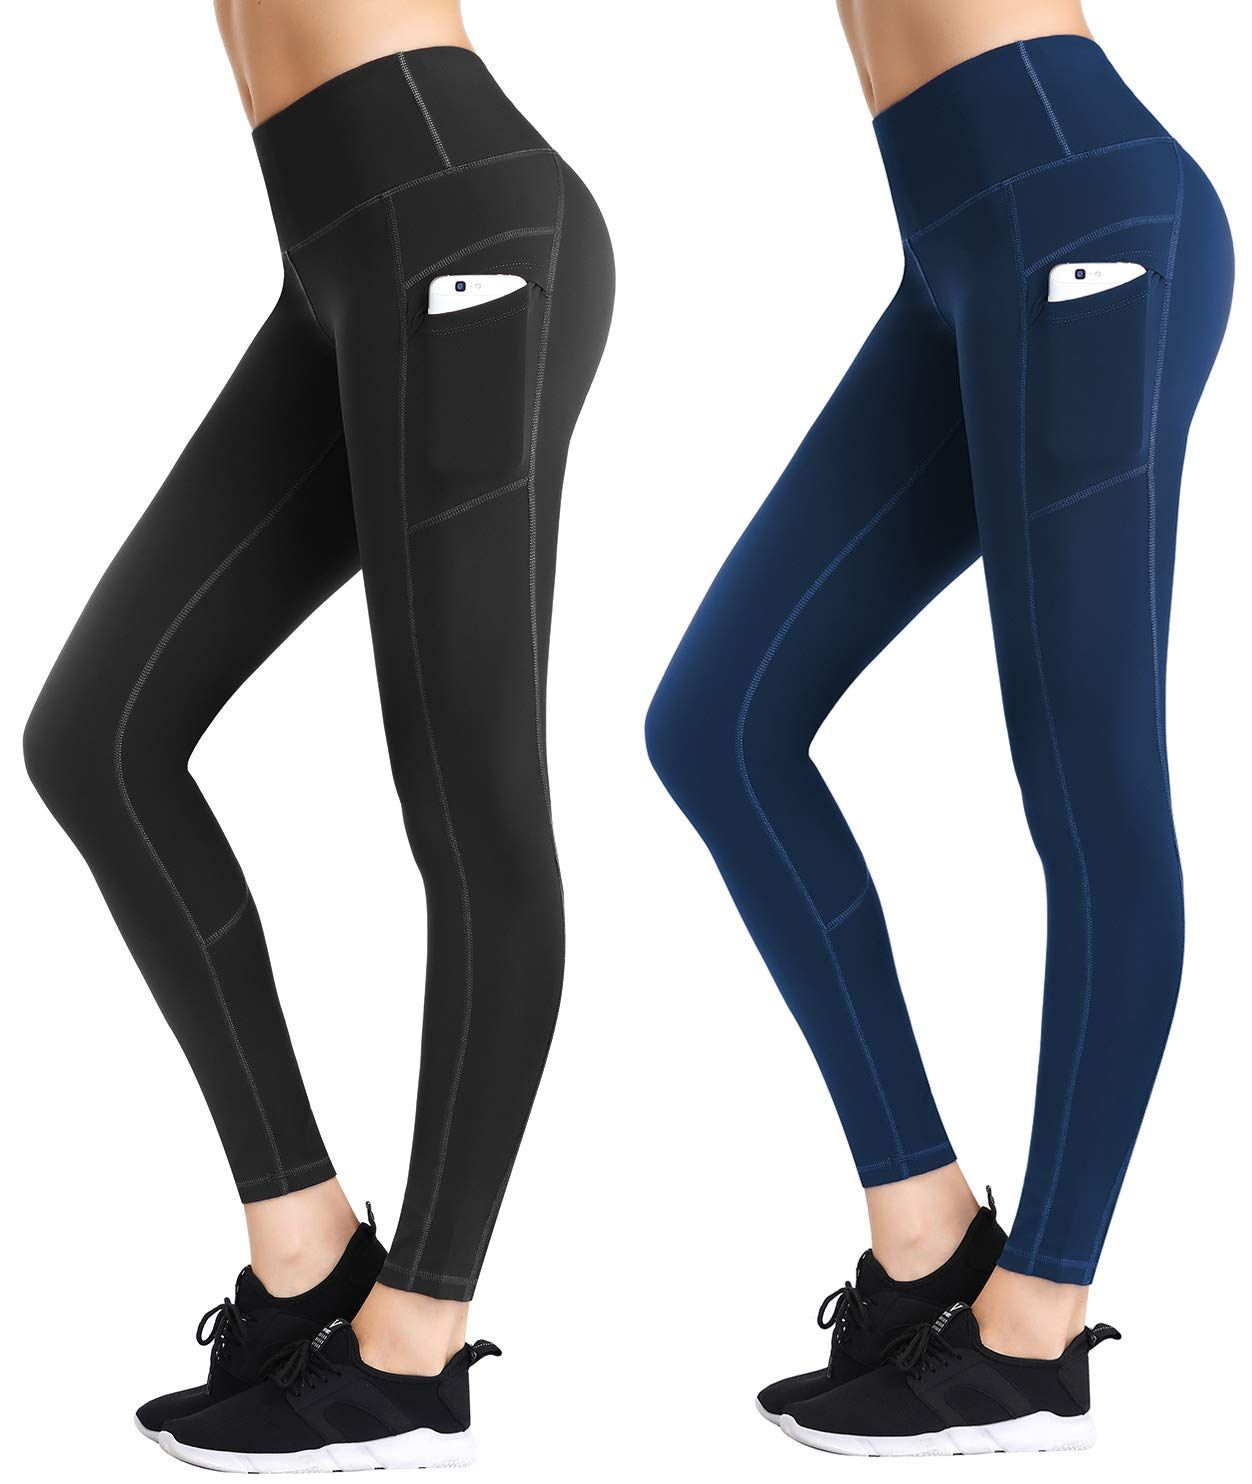 LifeSky Yoga Pants for Women with Pockets High Waist Tummy Control Leggings 4 Way Stretch Soft Athletic Pants Packs of 2